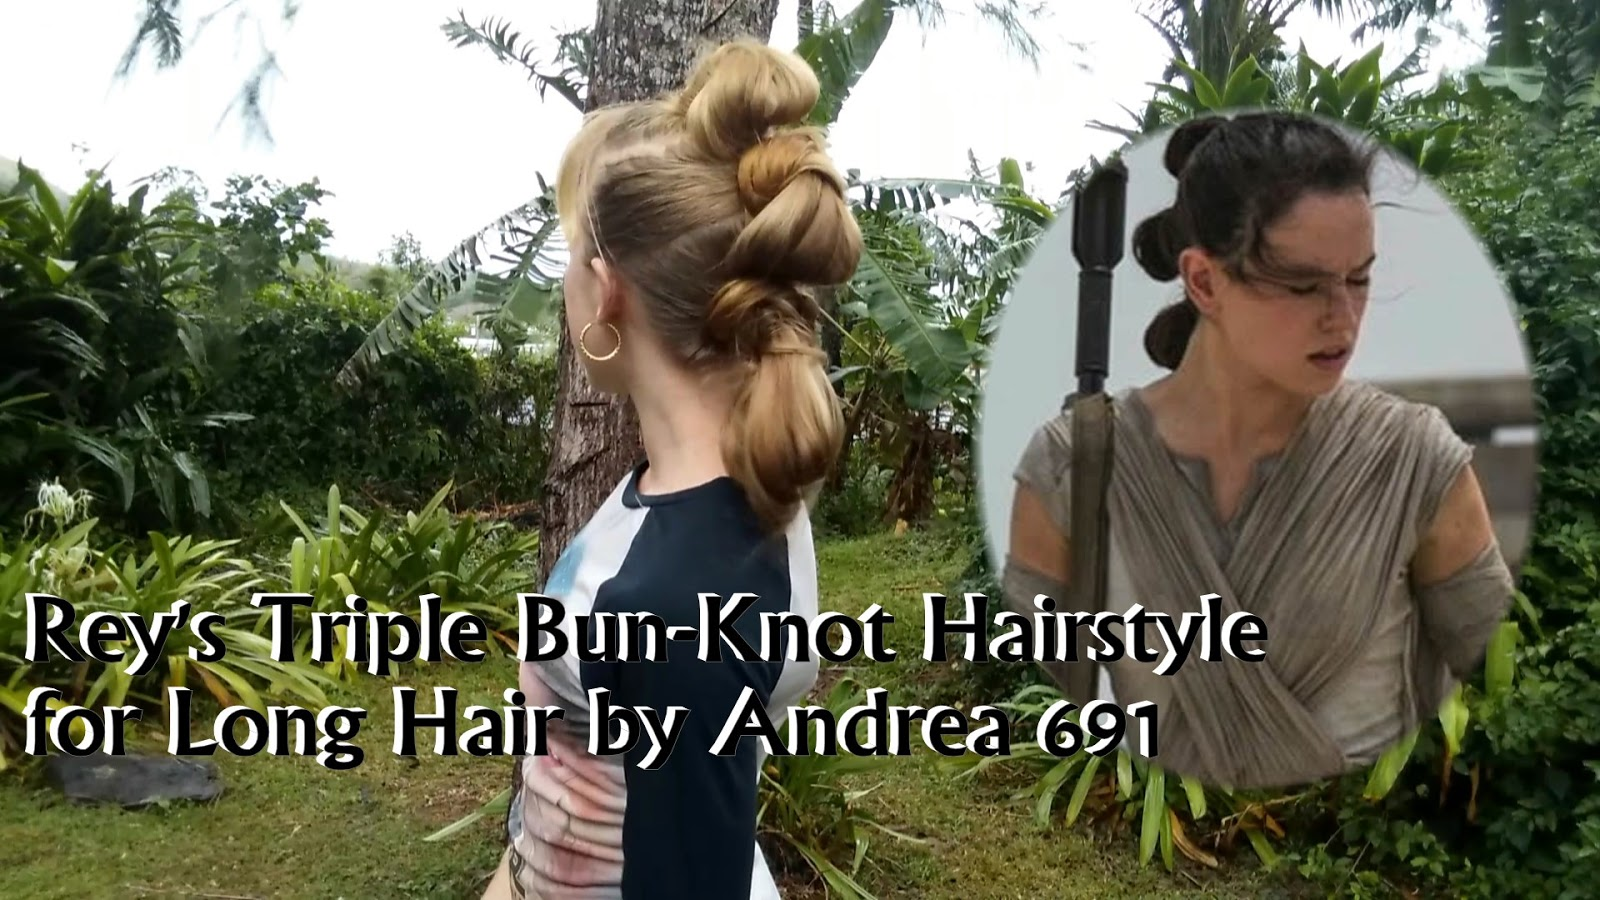 Braids Amp Hairstyles For Super Long Hair New YouTube Video Rey39s